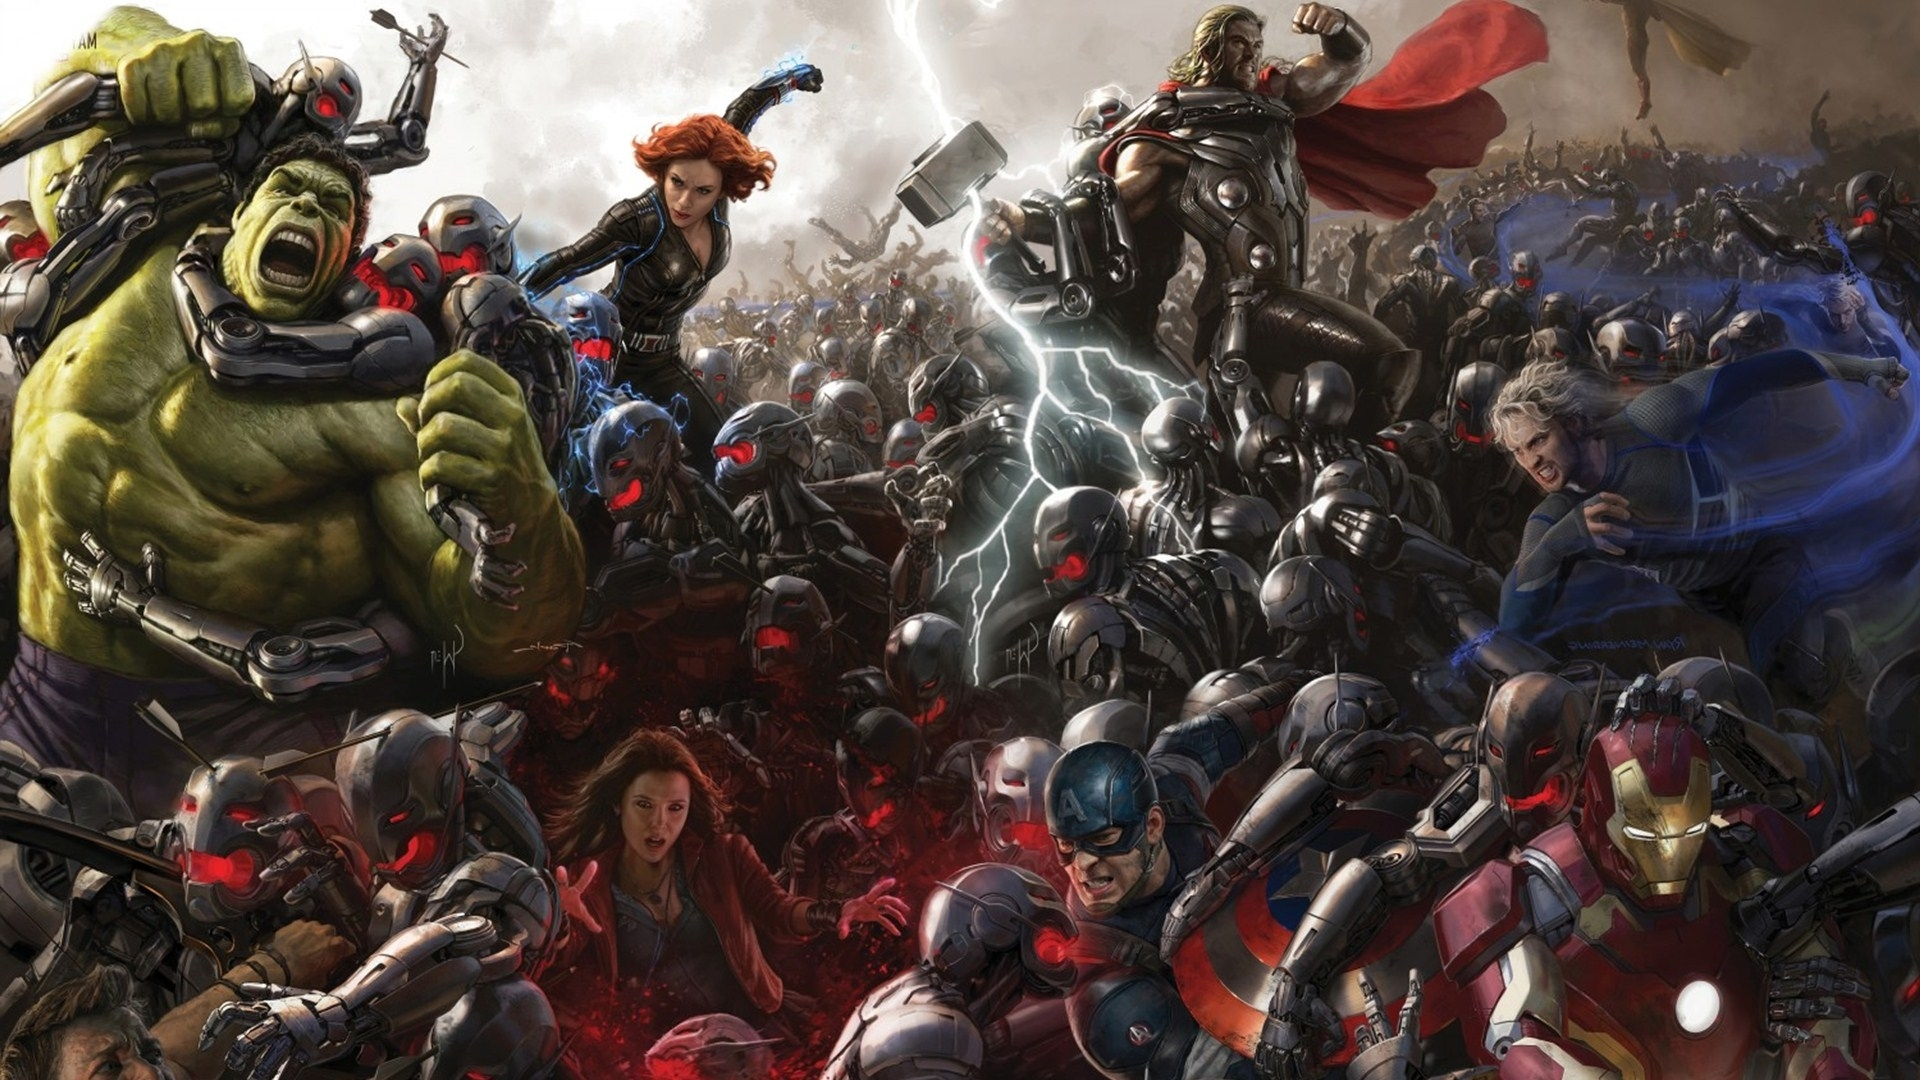 10 Top Age Of Ultron Wallpapers FULL HD 1920×1080 For PC Desktop